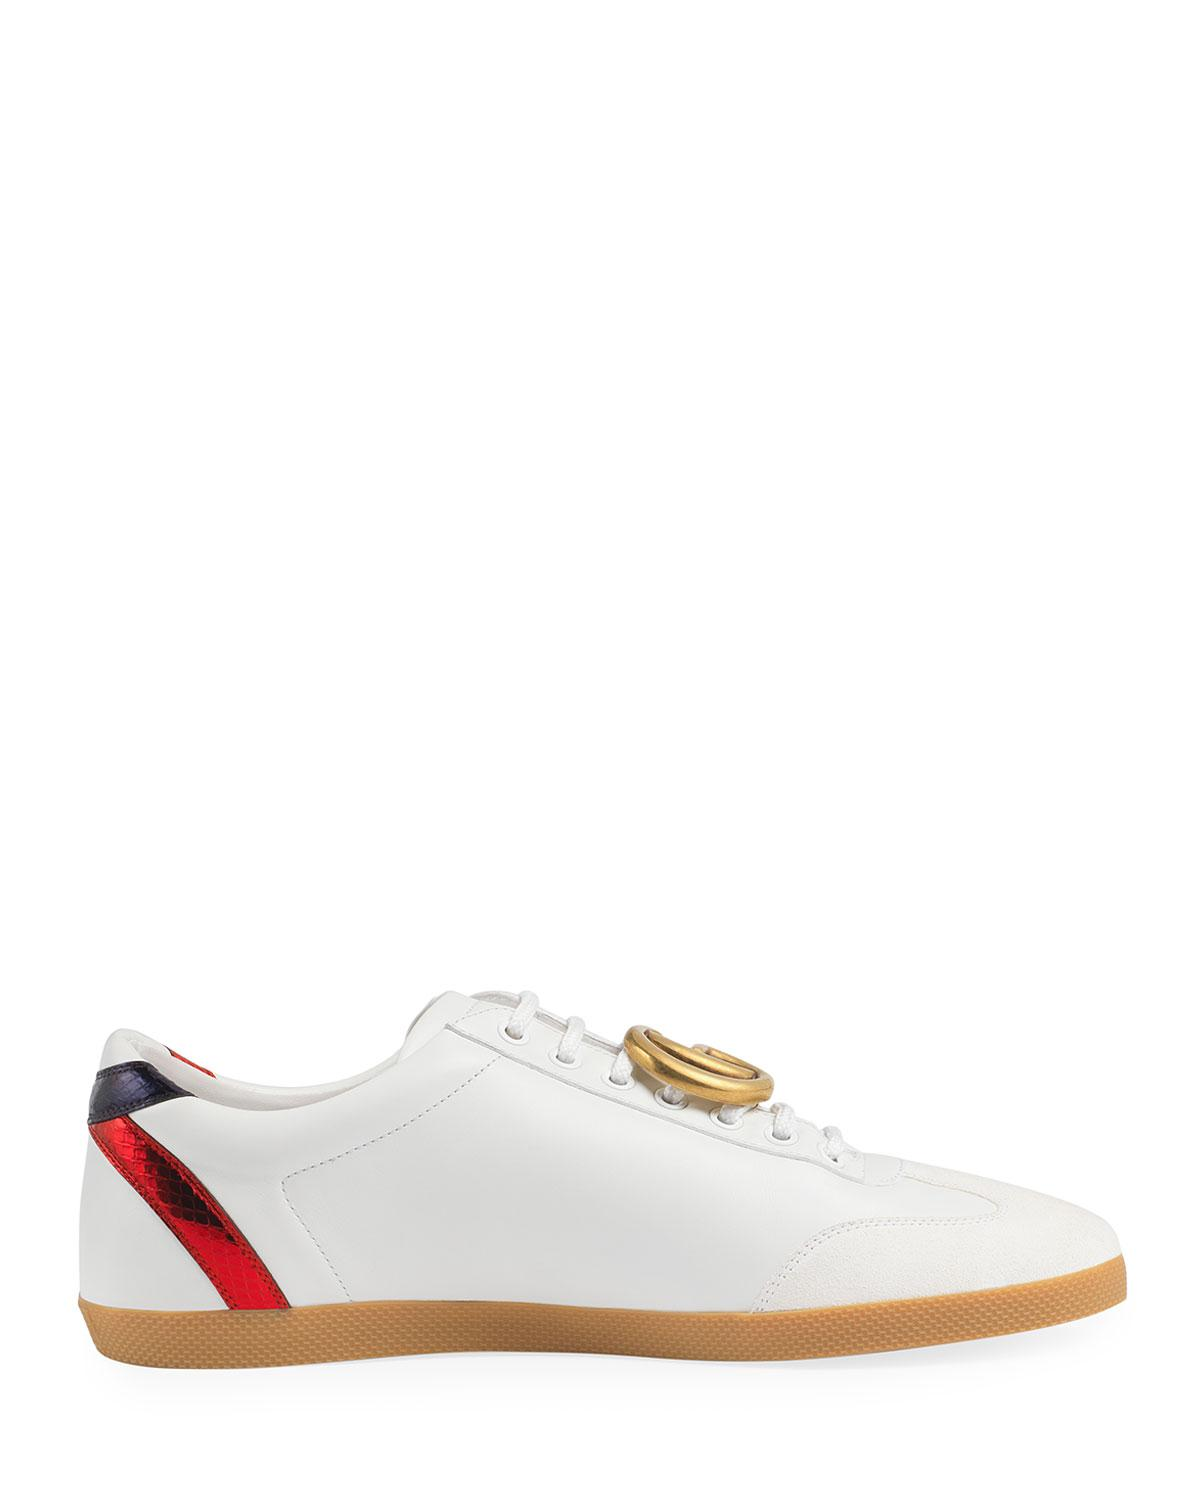 Gucci Bambi Gg Leather Low-top Sneaker